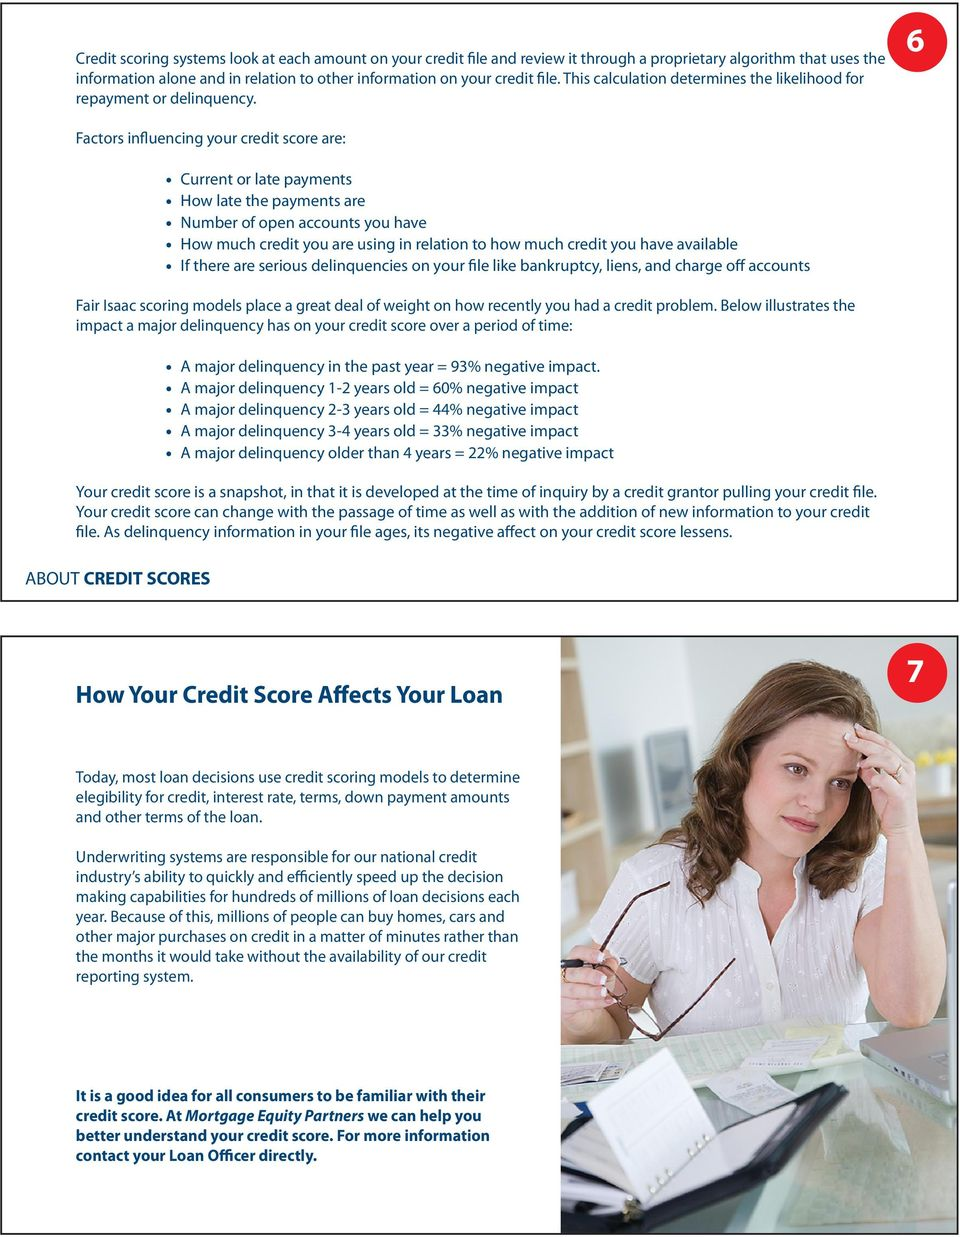 6 Factors influencing your credit score are: Current or late payments How late the payments are Number of open accounts you have How much credit you are using in relation to how much credit you have